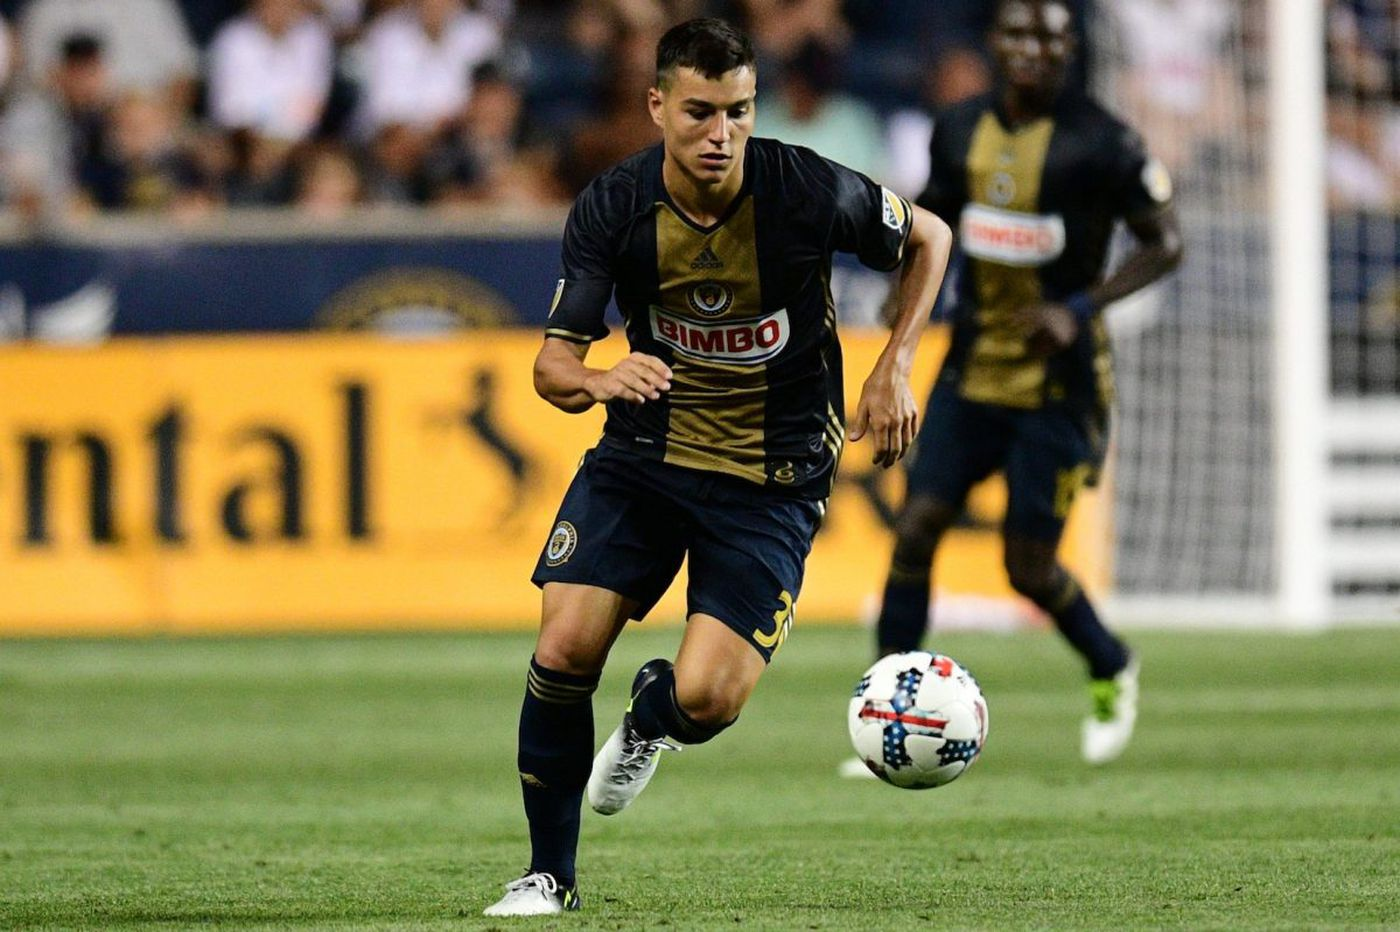 Union negotiating deal with Borek Dockal; Anthony Fontana is starting midfield playmaker as preseason ends